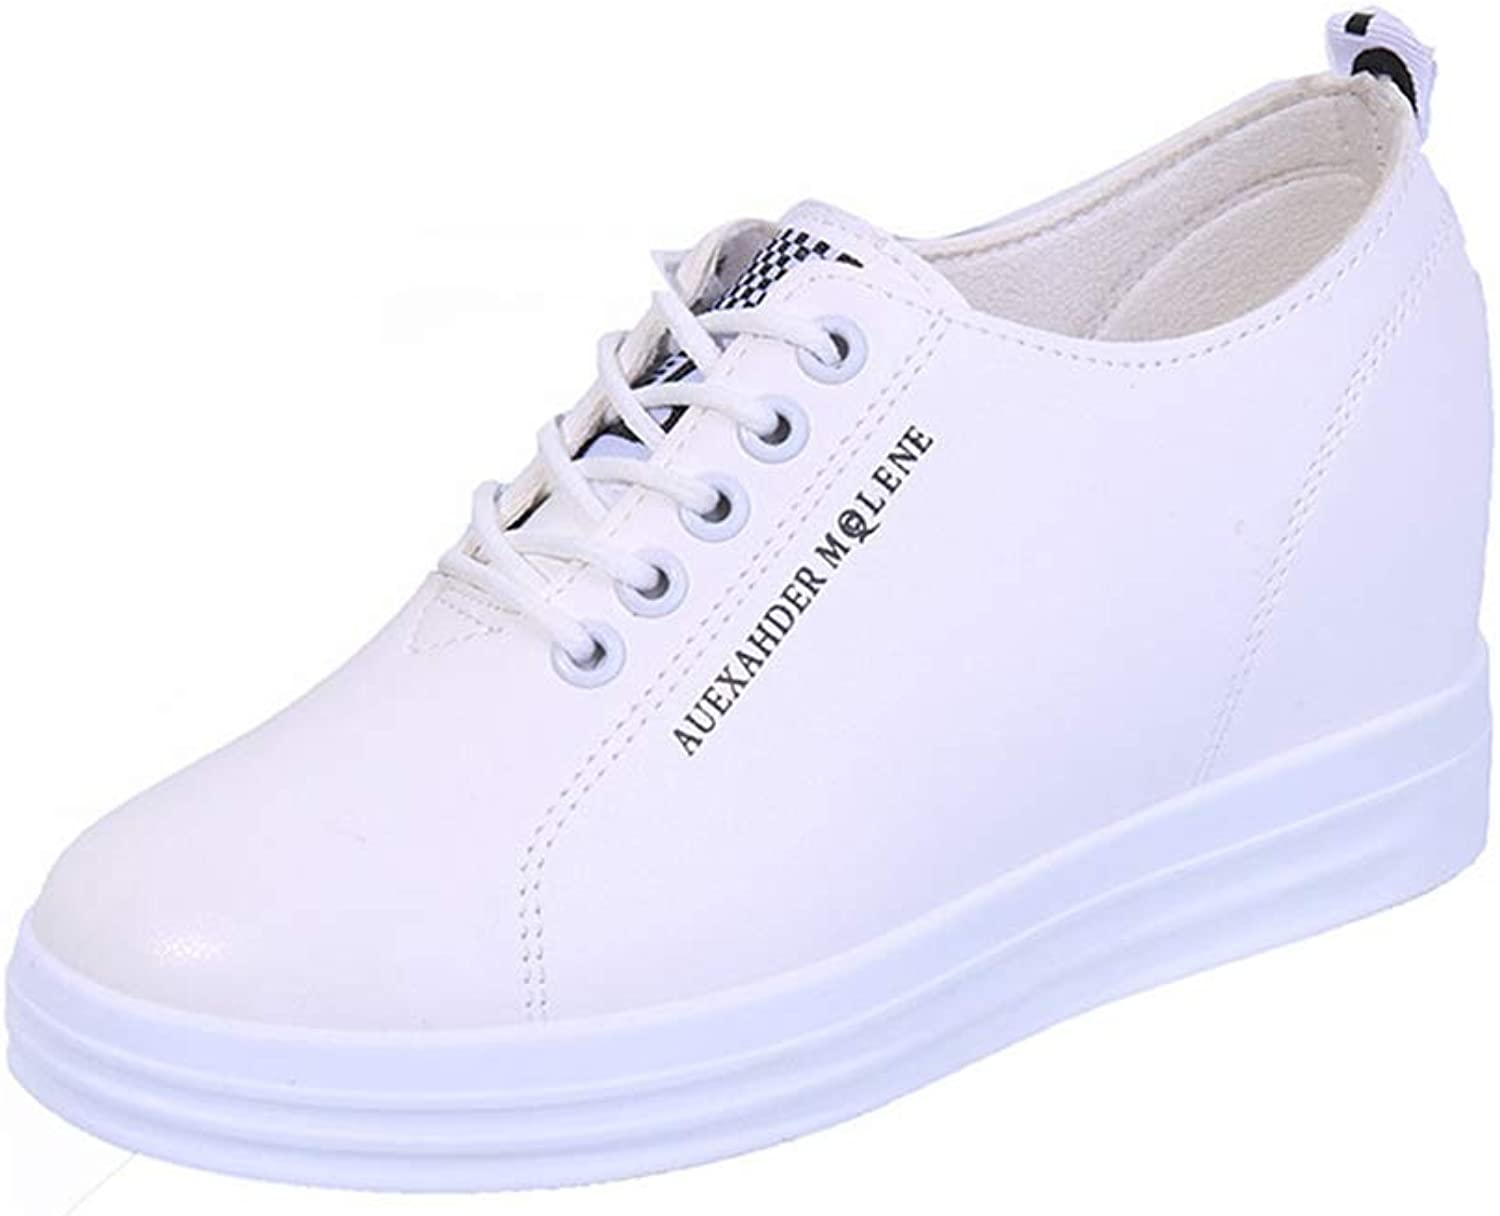 Hoxekle Women shoes Spring Autumn Wedges White Platform Sneakers Woman Vulcanize shoes Increase Casual shoes